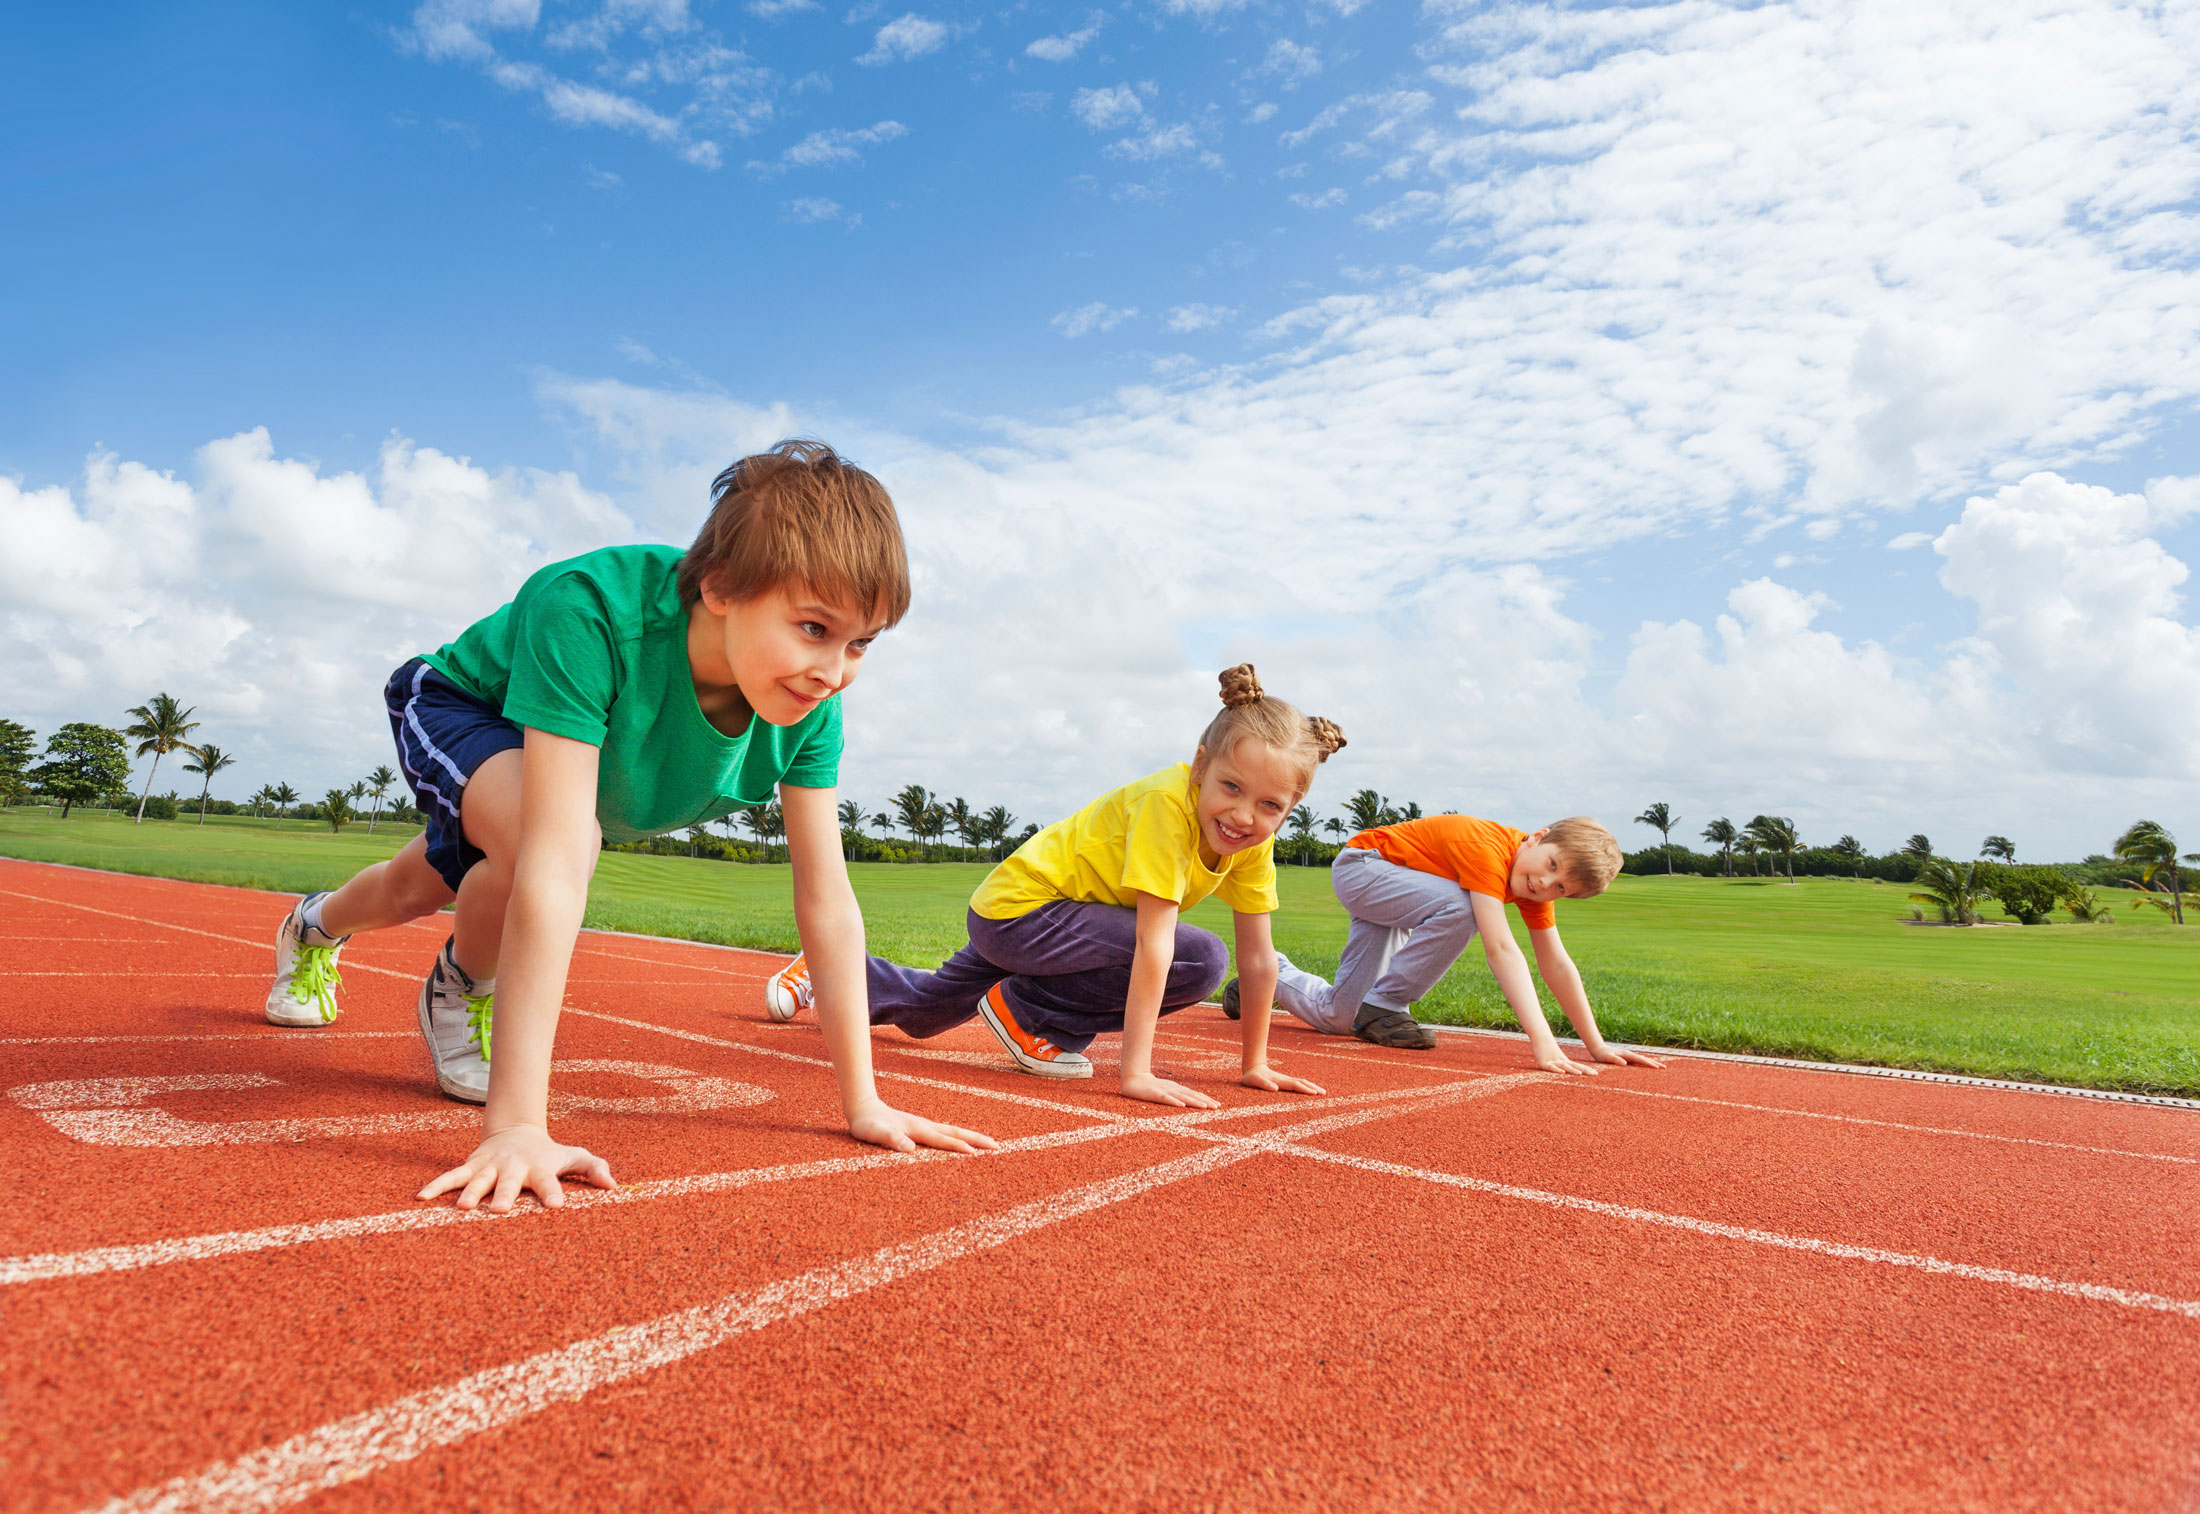 stop sports injuries sports injury prevention - Sports Images For Kids